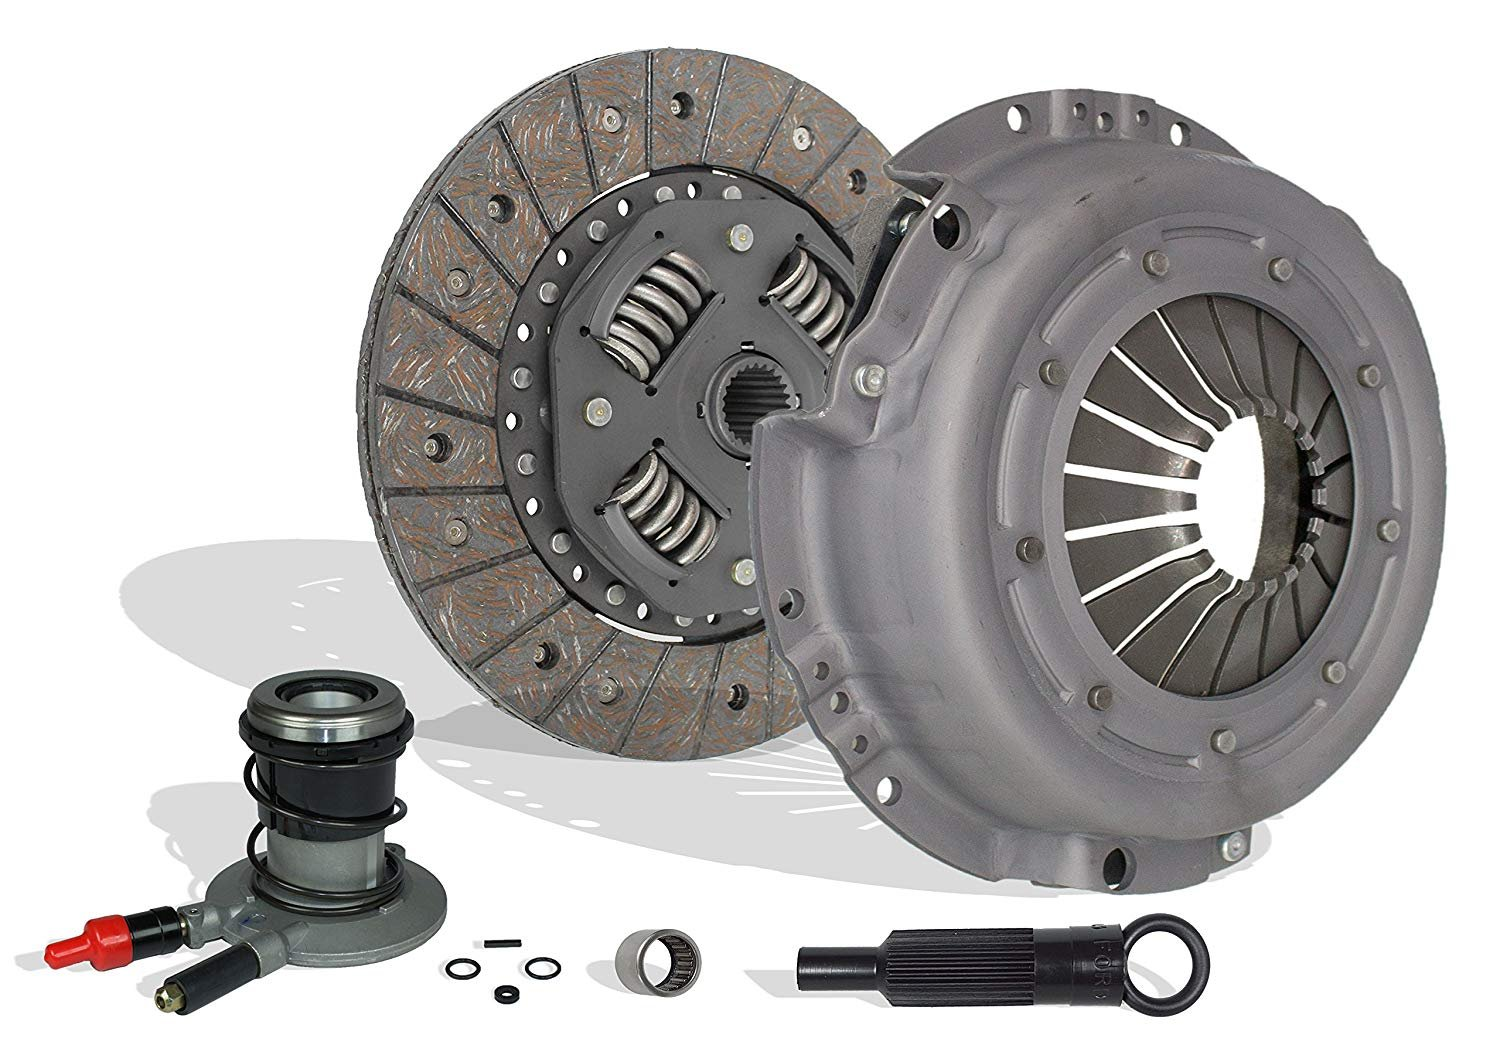 Clutch Kit And Slave Works With Ford Ranger Bronco II Aerostar Custom S  Sport STX XLT XL 1988-1992 2 9L 3 0L V6 GAS OHV 2 0L 2 3L L4 GAS SOHC